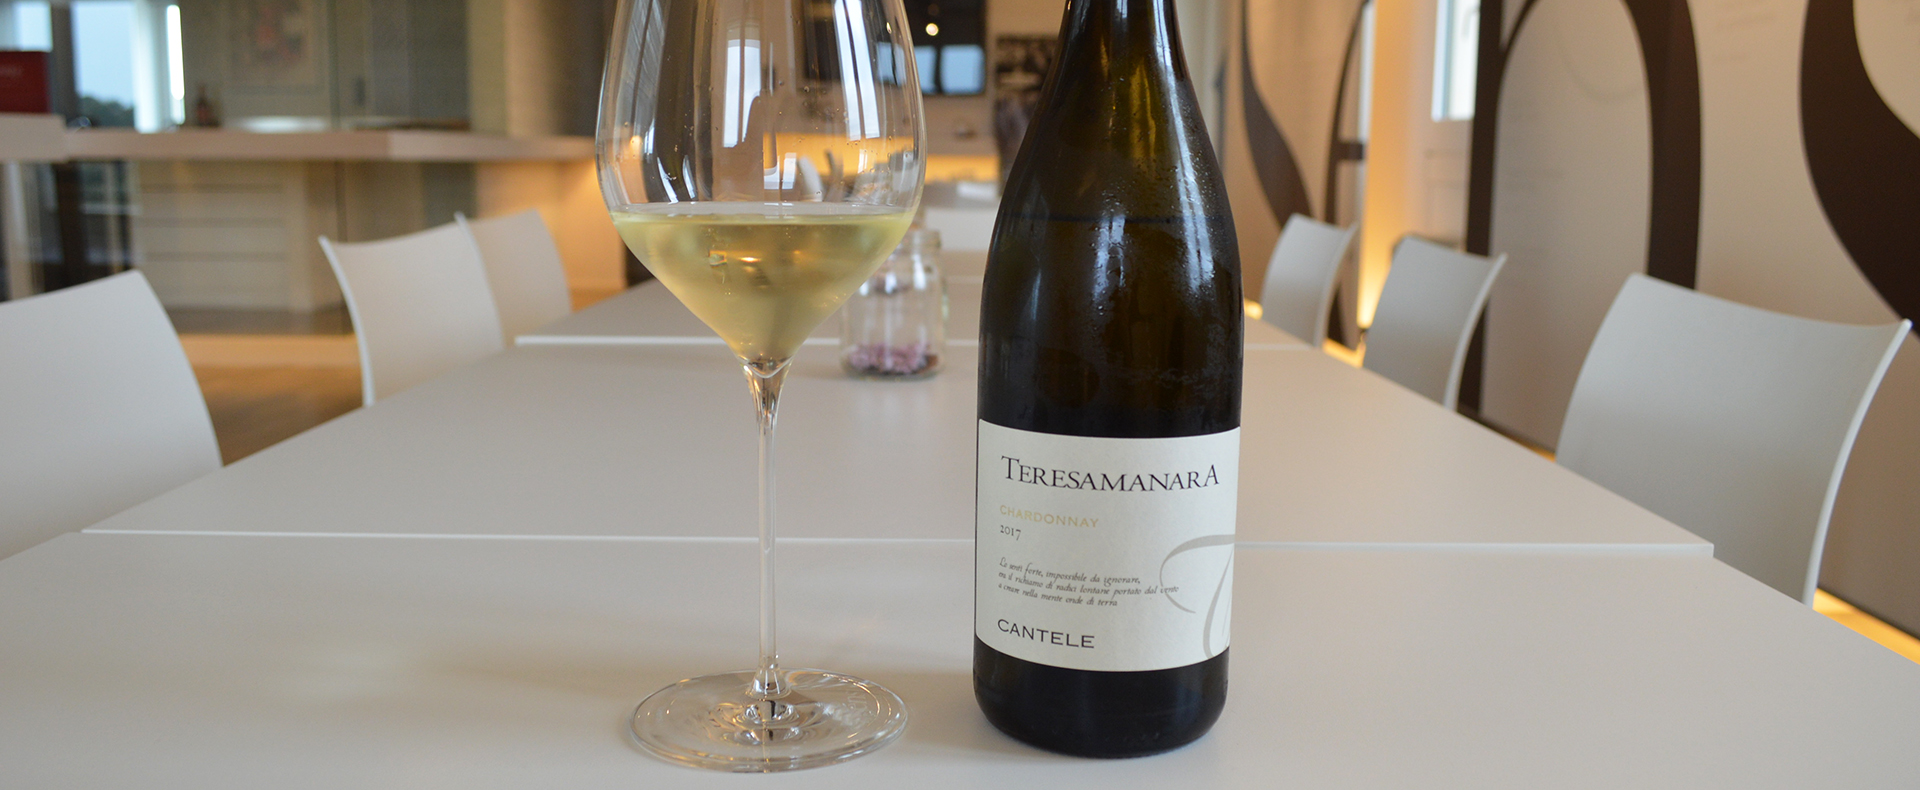 Twenty years of Teresa Manara Chardonnay, named after the woman who inspired it all…